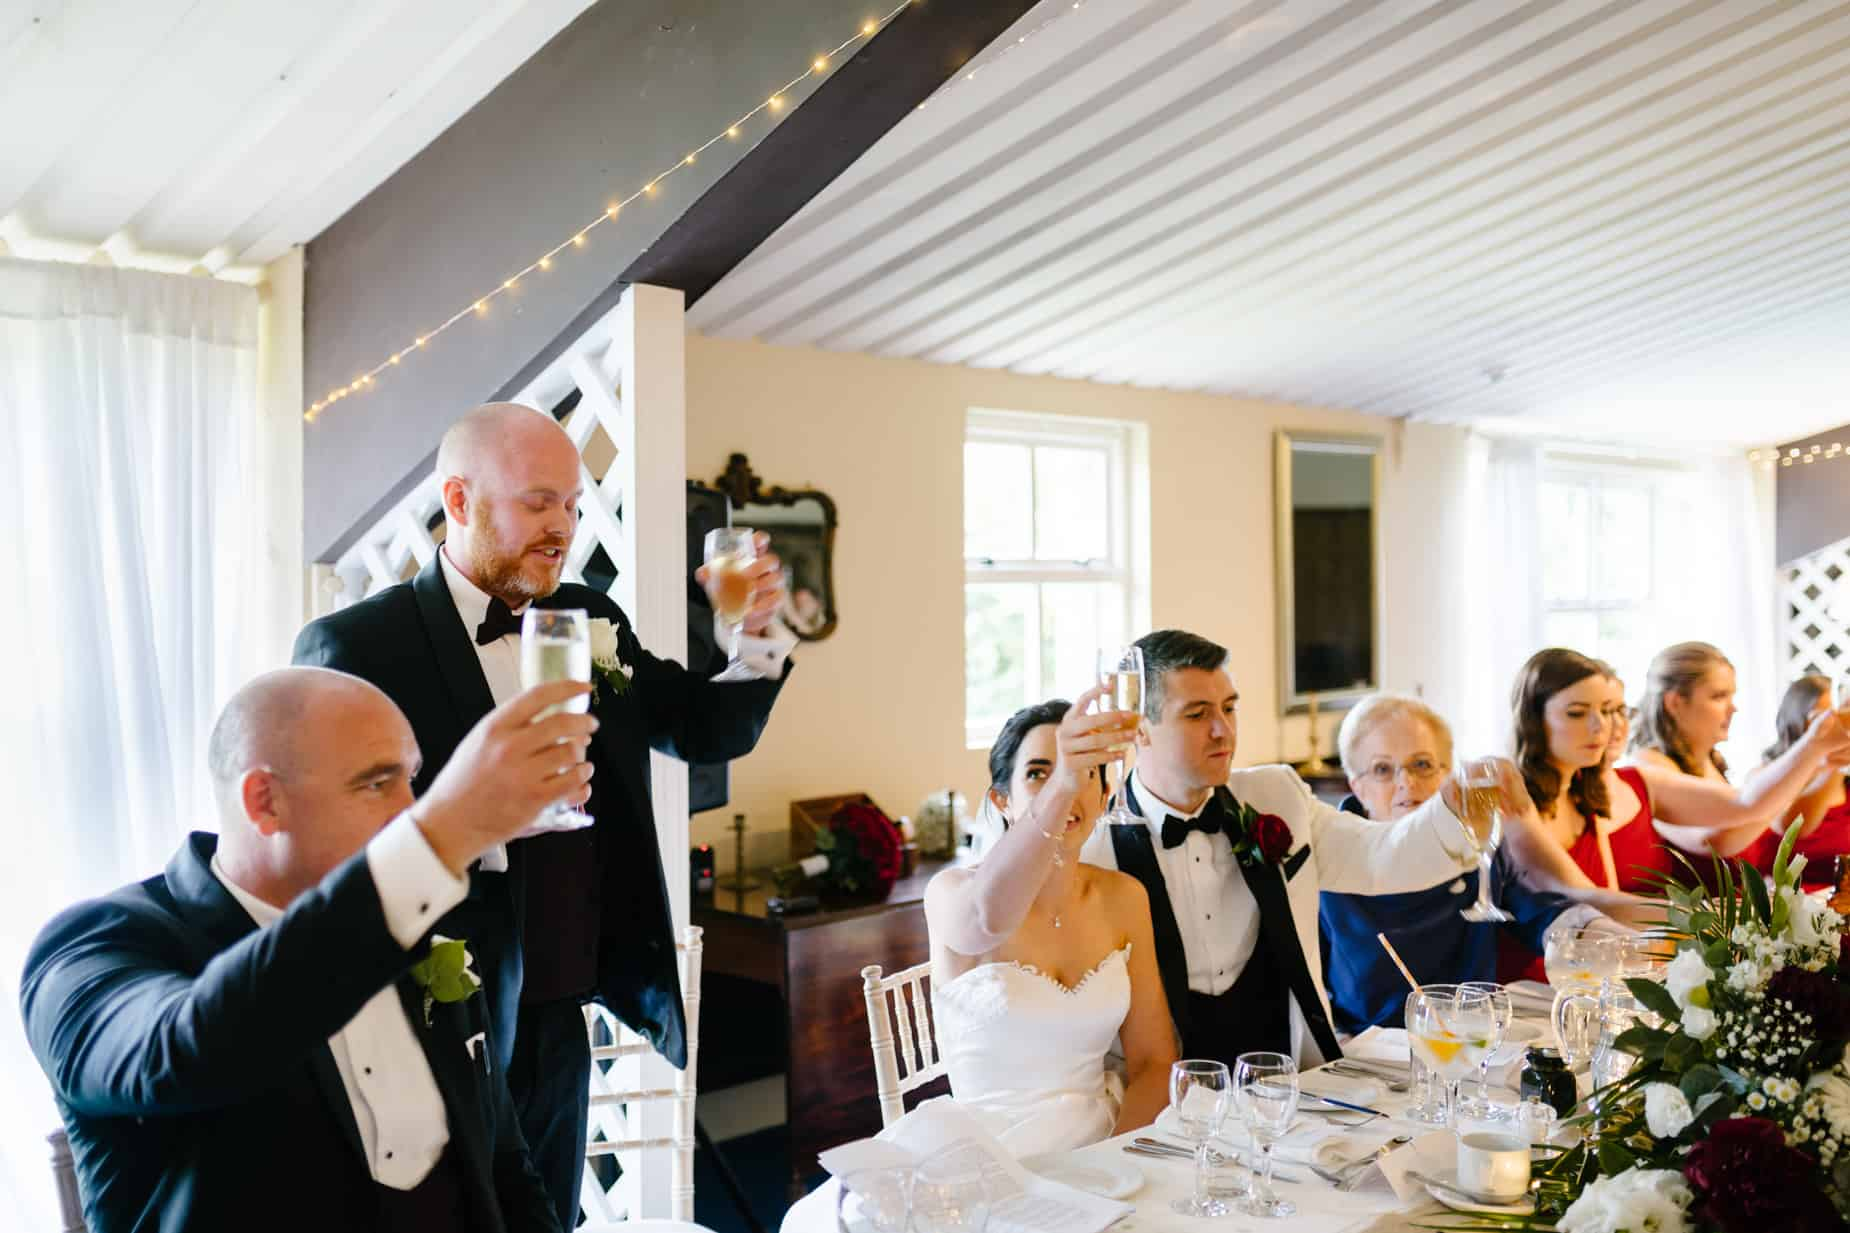 wedding party toasting the bride and groom